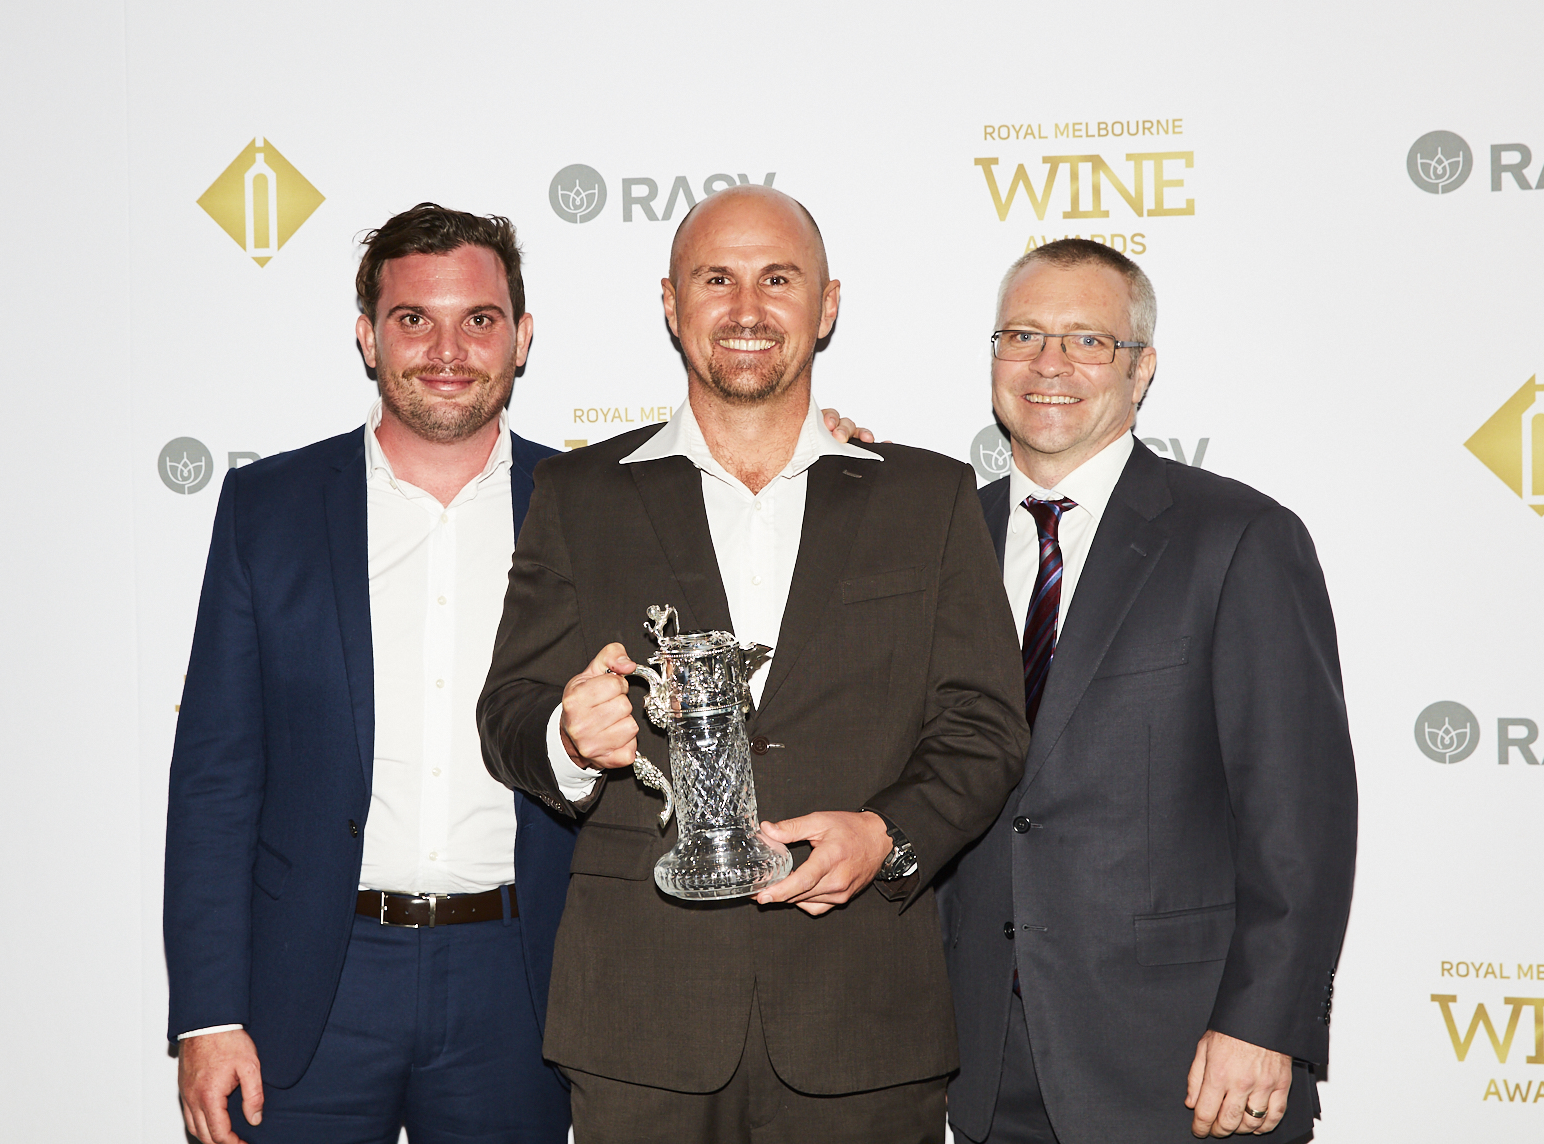 The Jimmy Watson Memorial Trophy for Best Young Red Wine recipients Brendan Carr, Glenn Goodall, Darren Rathbone